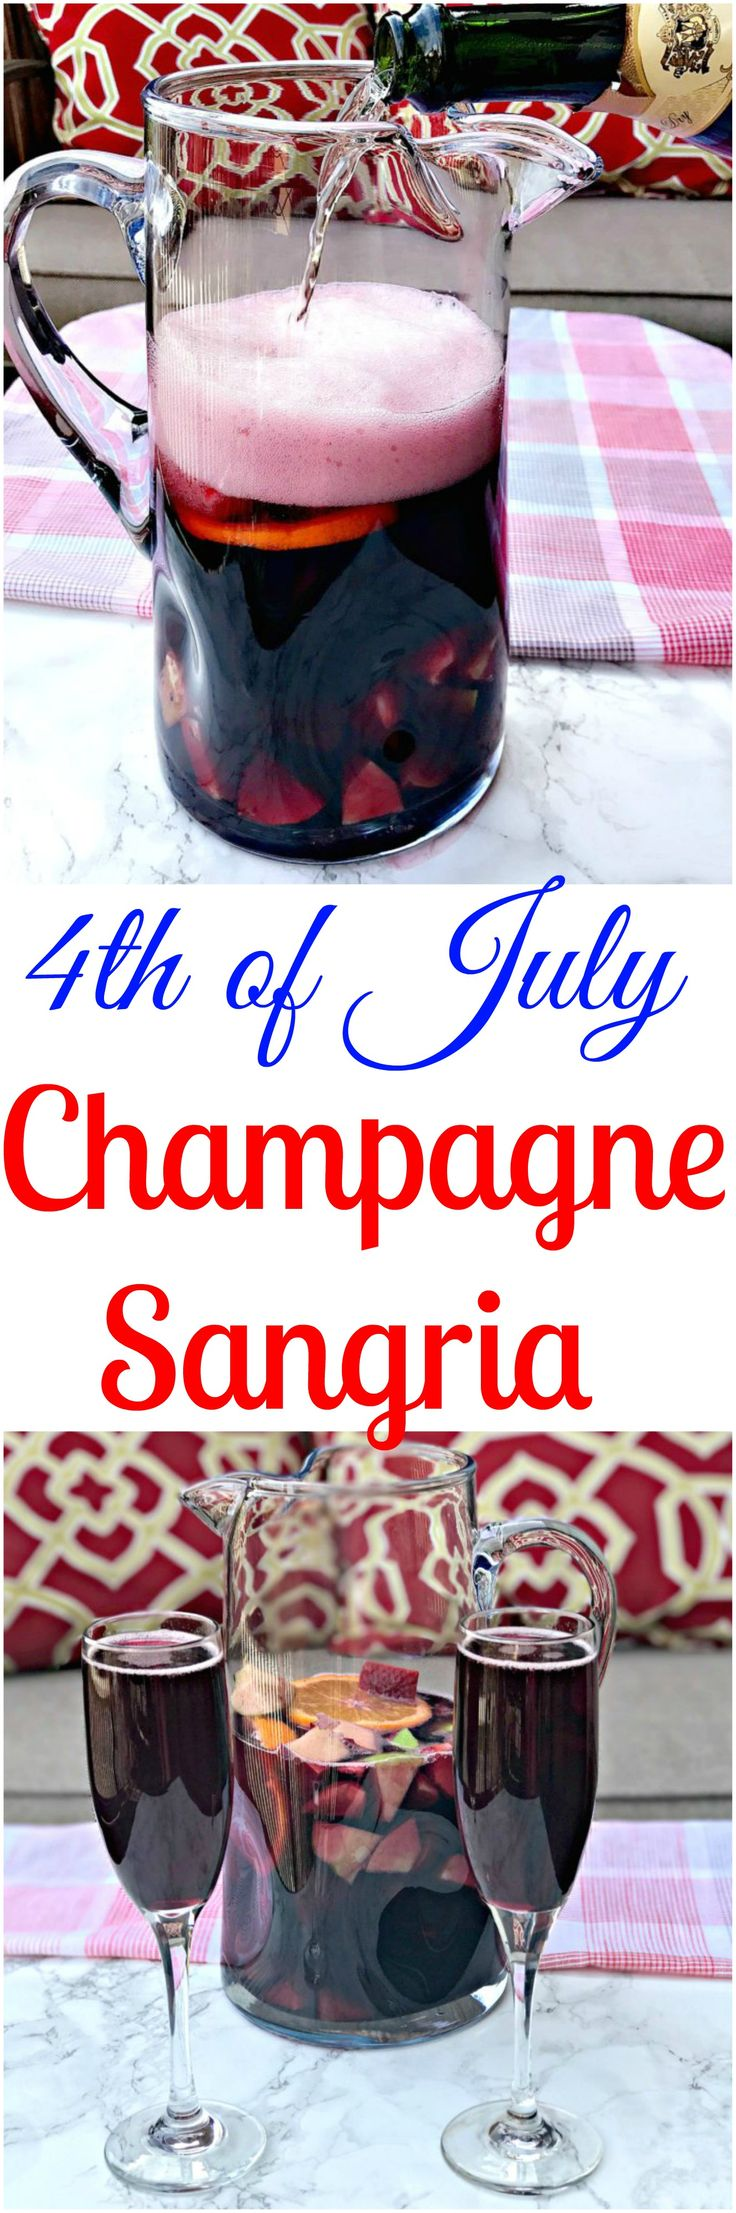 4th of July Patriotic Red Wine Champagne Sangria perfect 4th of July drink, cocktail. Fun Patriotic drinks